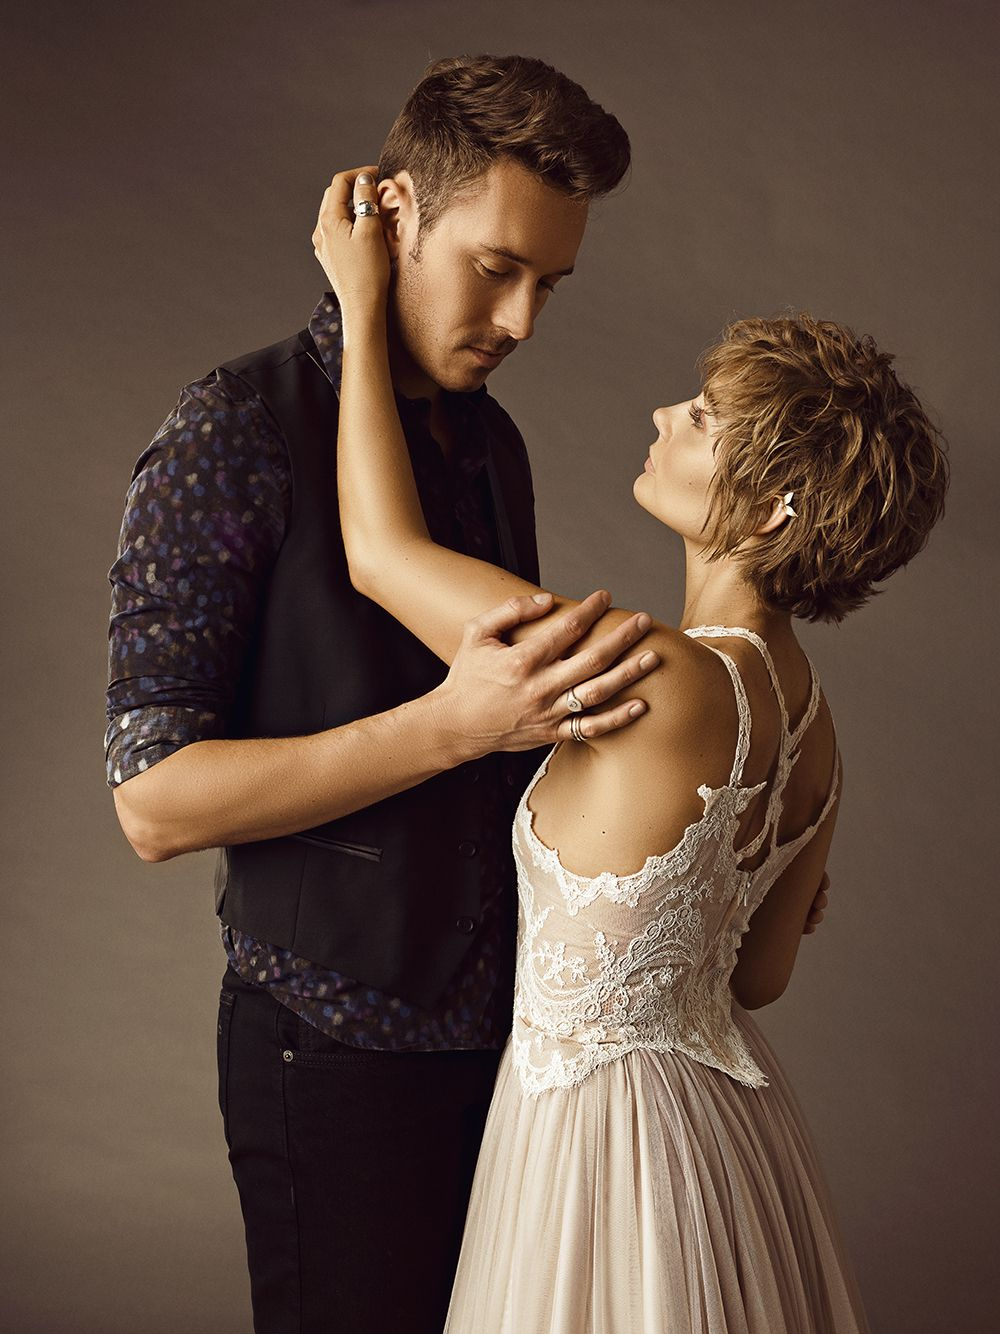 Sam Palladio & Clare Bowen as Gunnar Scott & Scarlett O'Connor